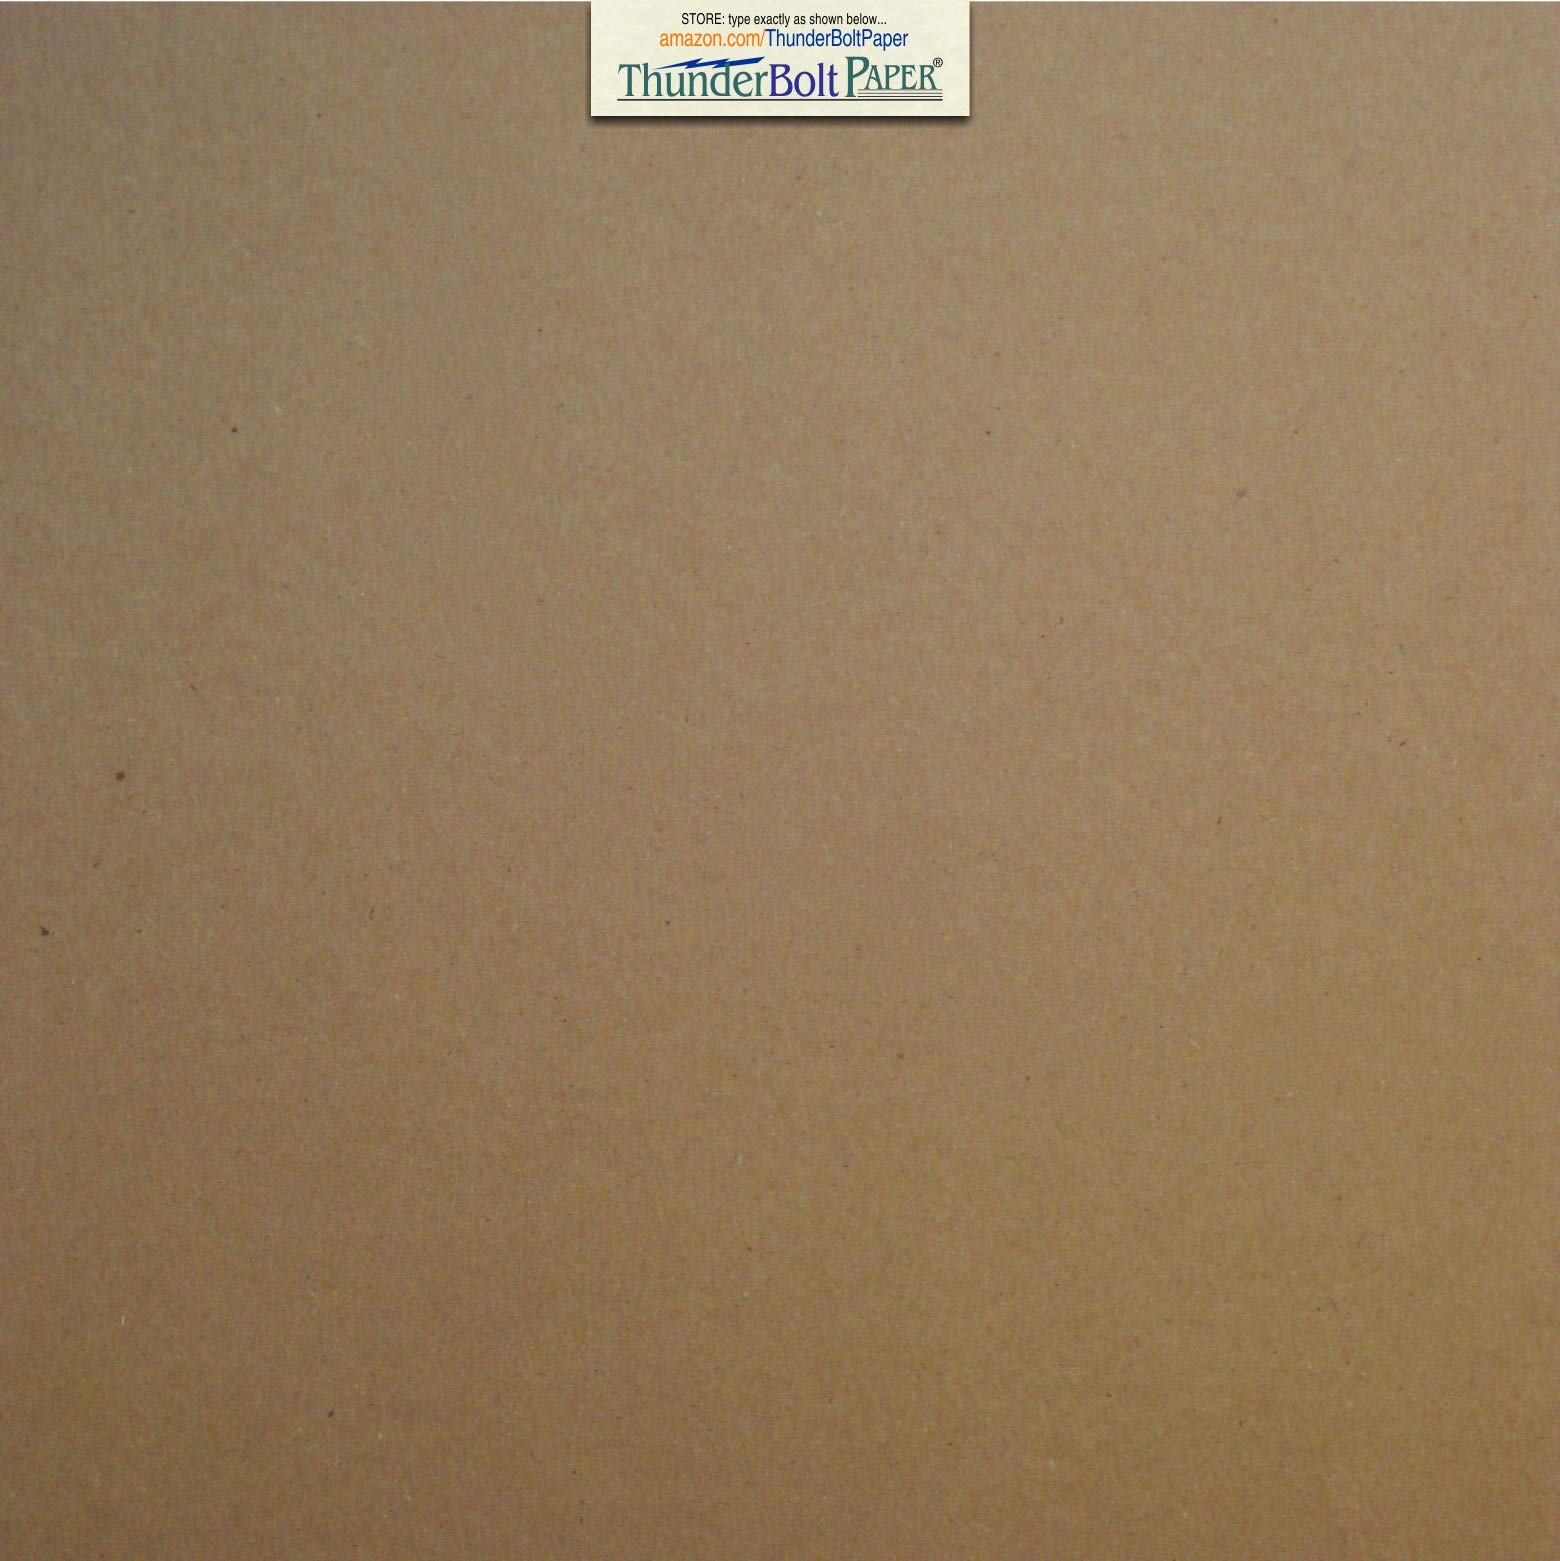 6 Sheets Brown/Gray Chipboard 60 Point Extra Thick 12'' X 12'' (12X12 Inches) Scrapbook Album|Cover Size .060 Caliper Extra X Heavy Cardboard as Thick as 15 Sheets 20# Paper